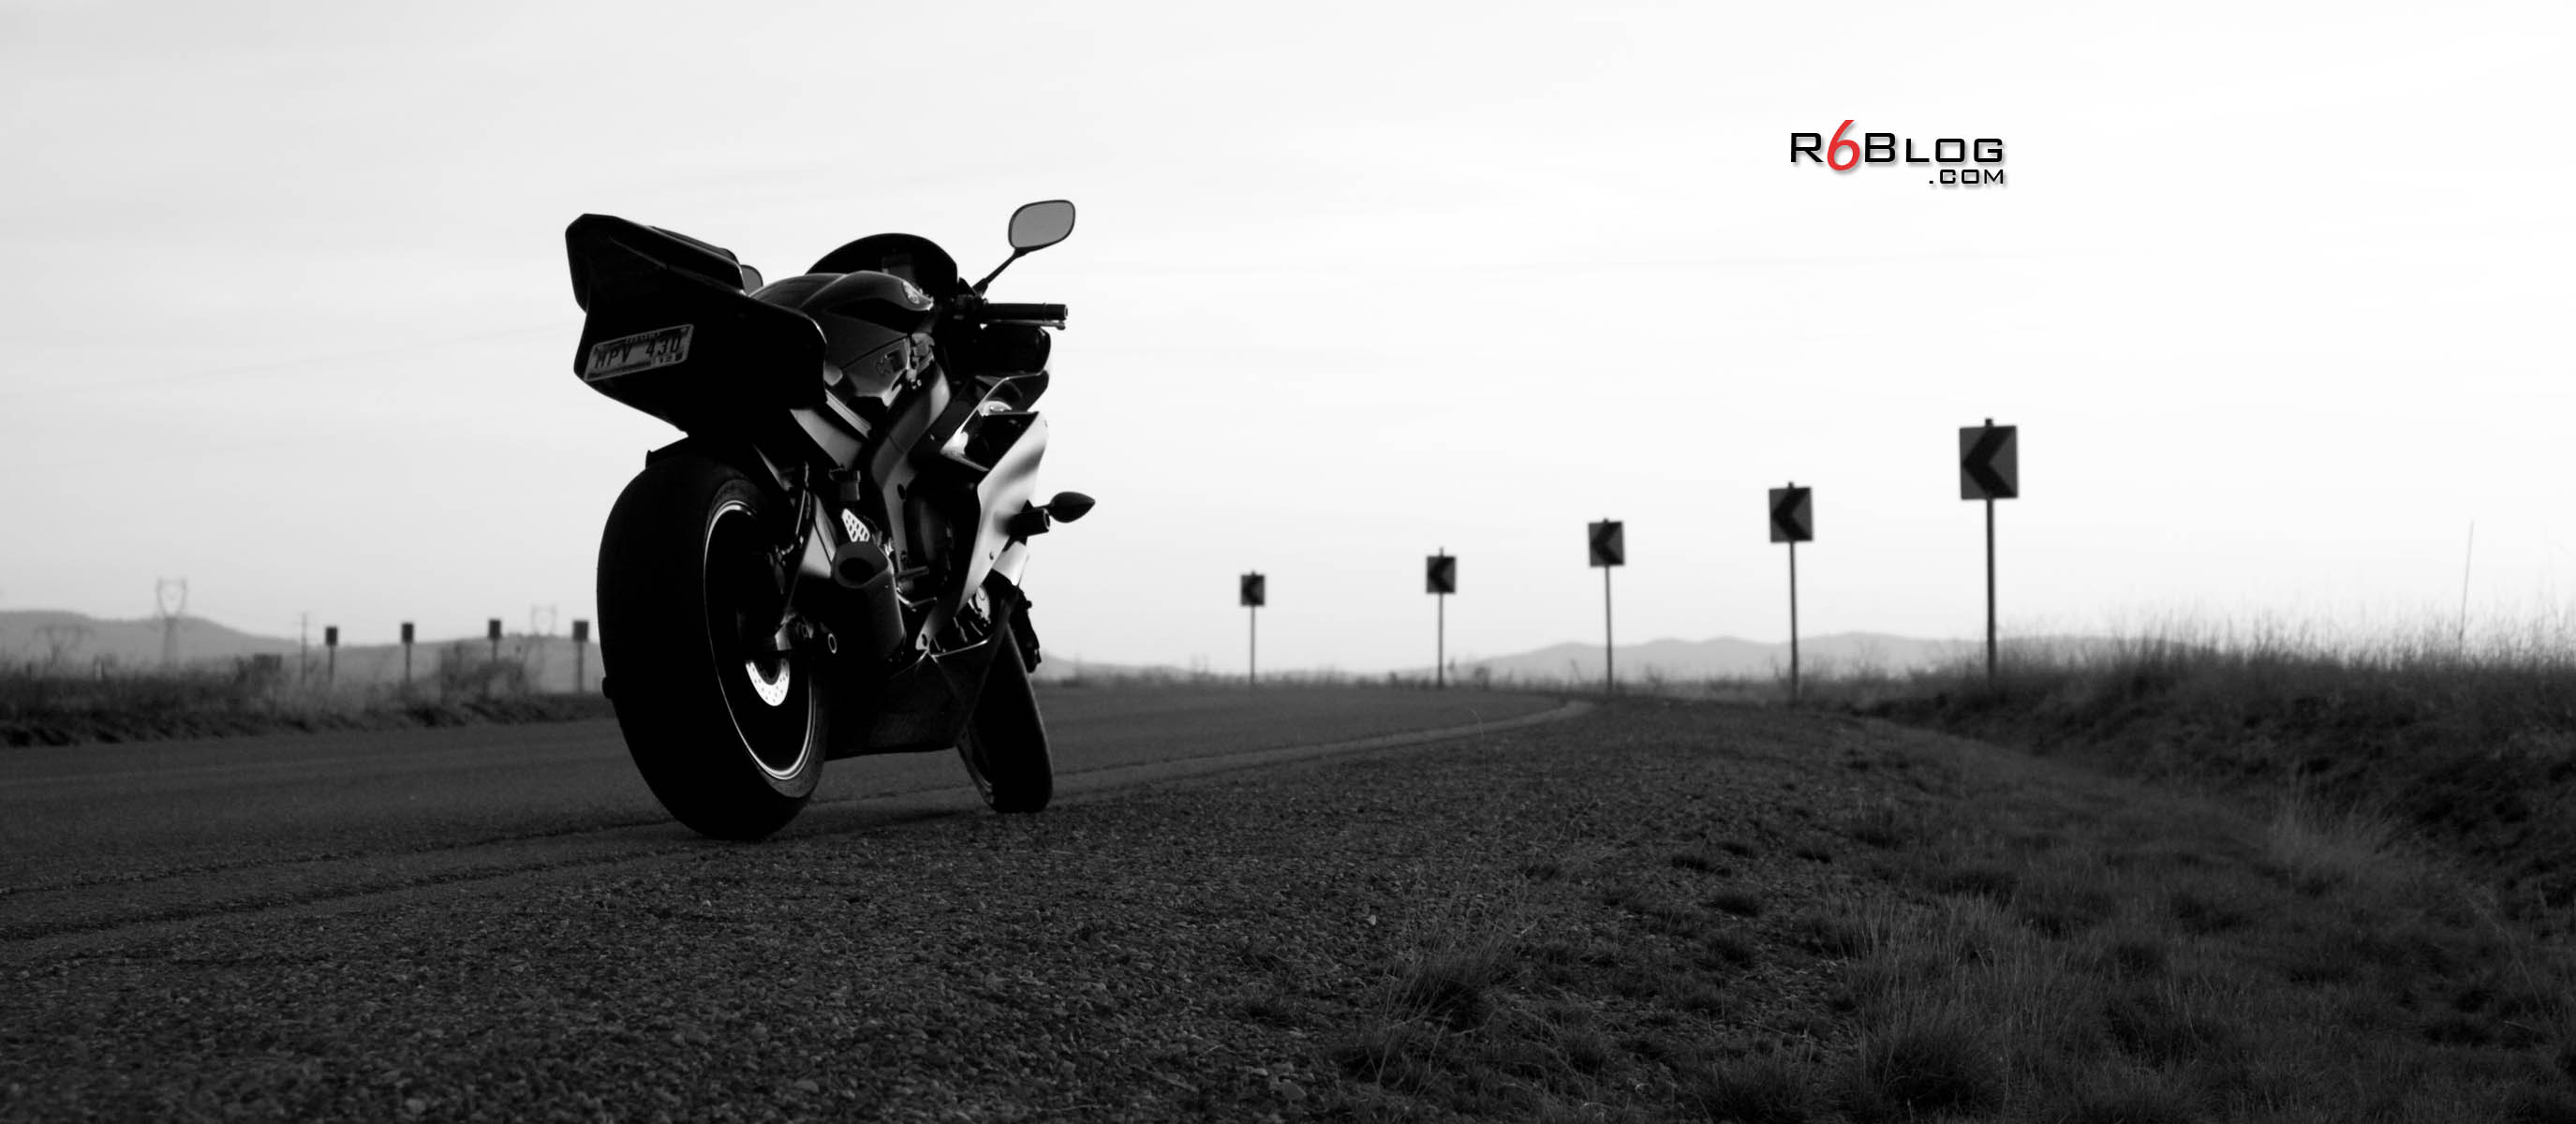 Yamaha R6 Raven Wallpaper 7388 Hd Wallpapers in Bikes   Imagescicom 2750x1200